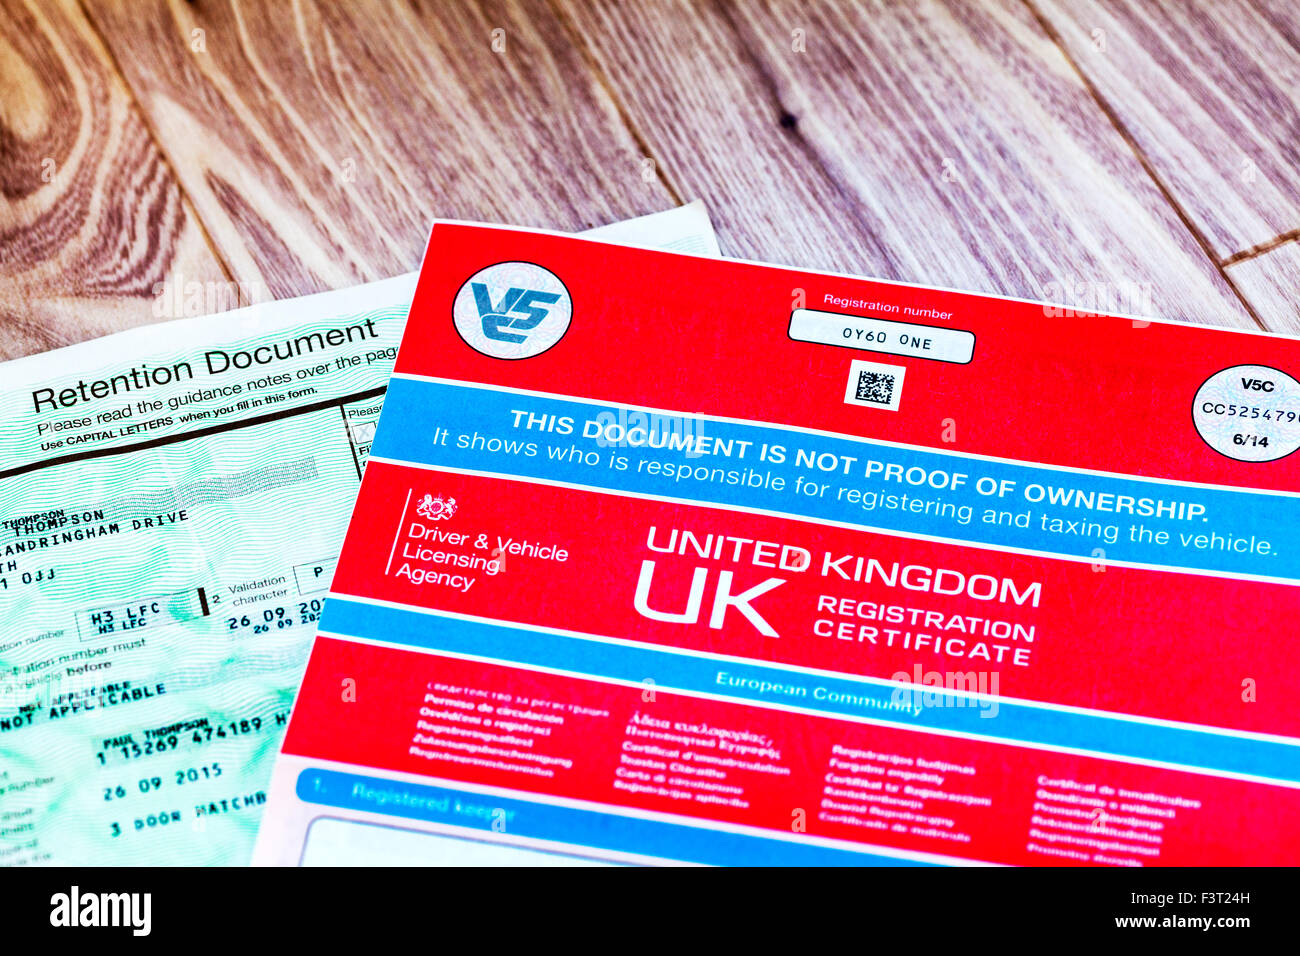 Retention document private number plate and v5c car registration certificate log book owner ownership proof UK england - Stock Image